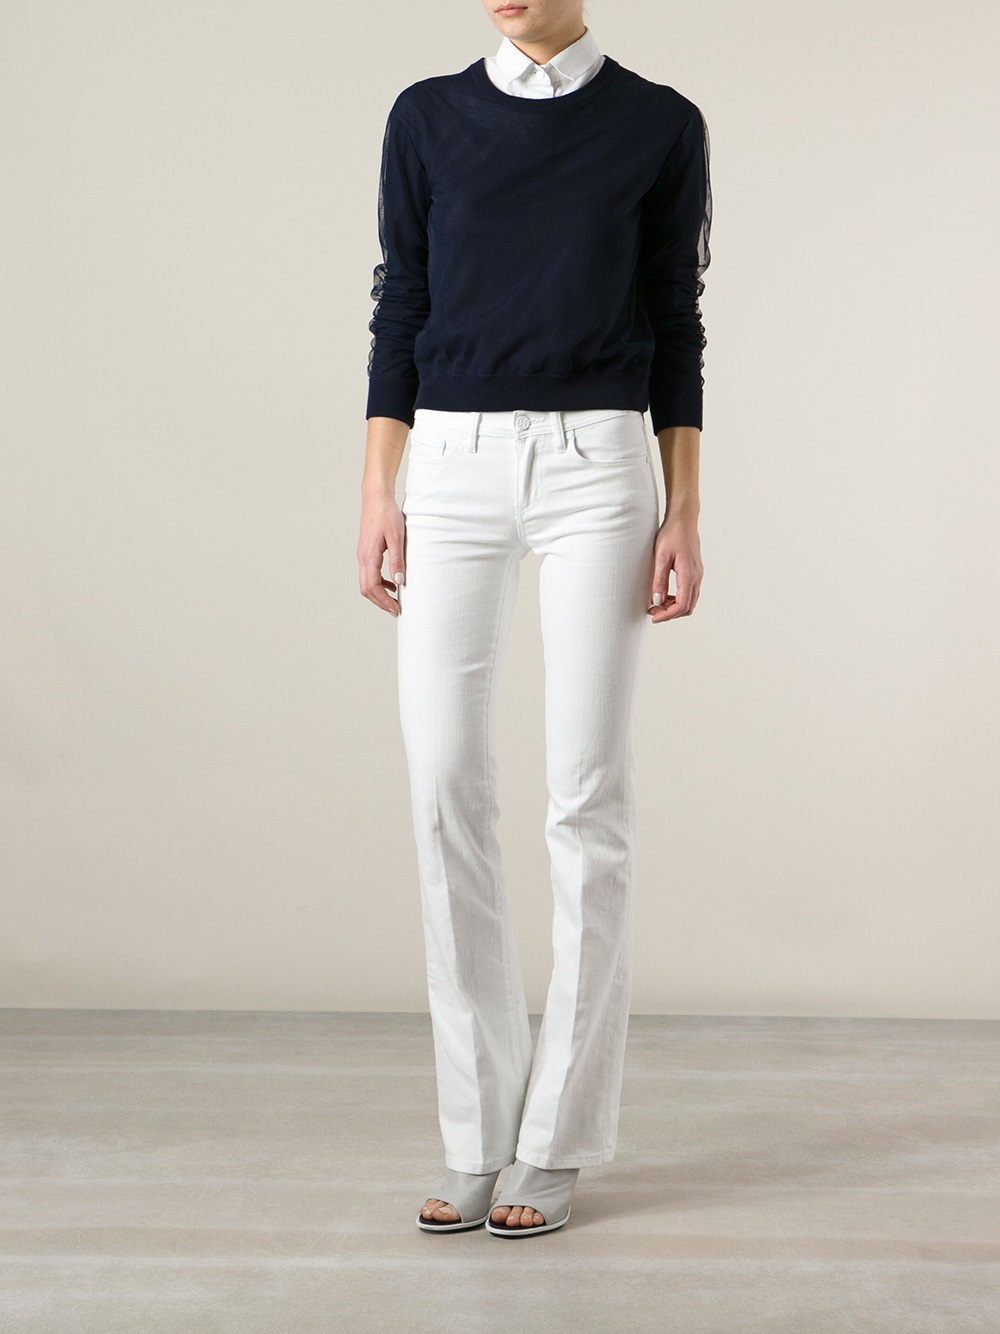 Tory burch Bootcut Jeans in White | Lyst